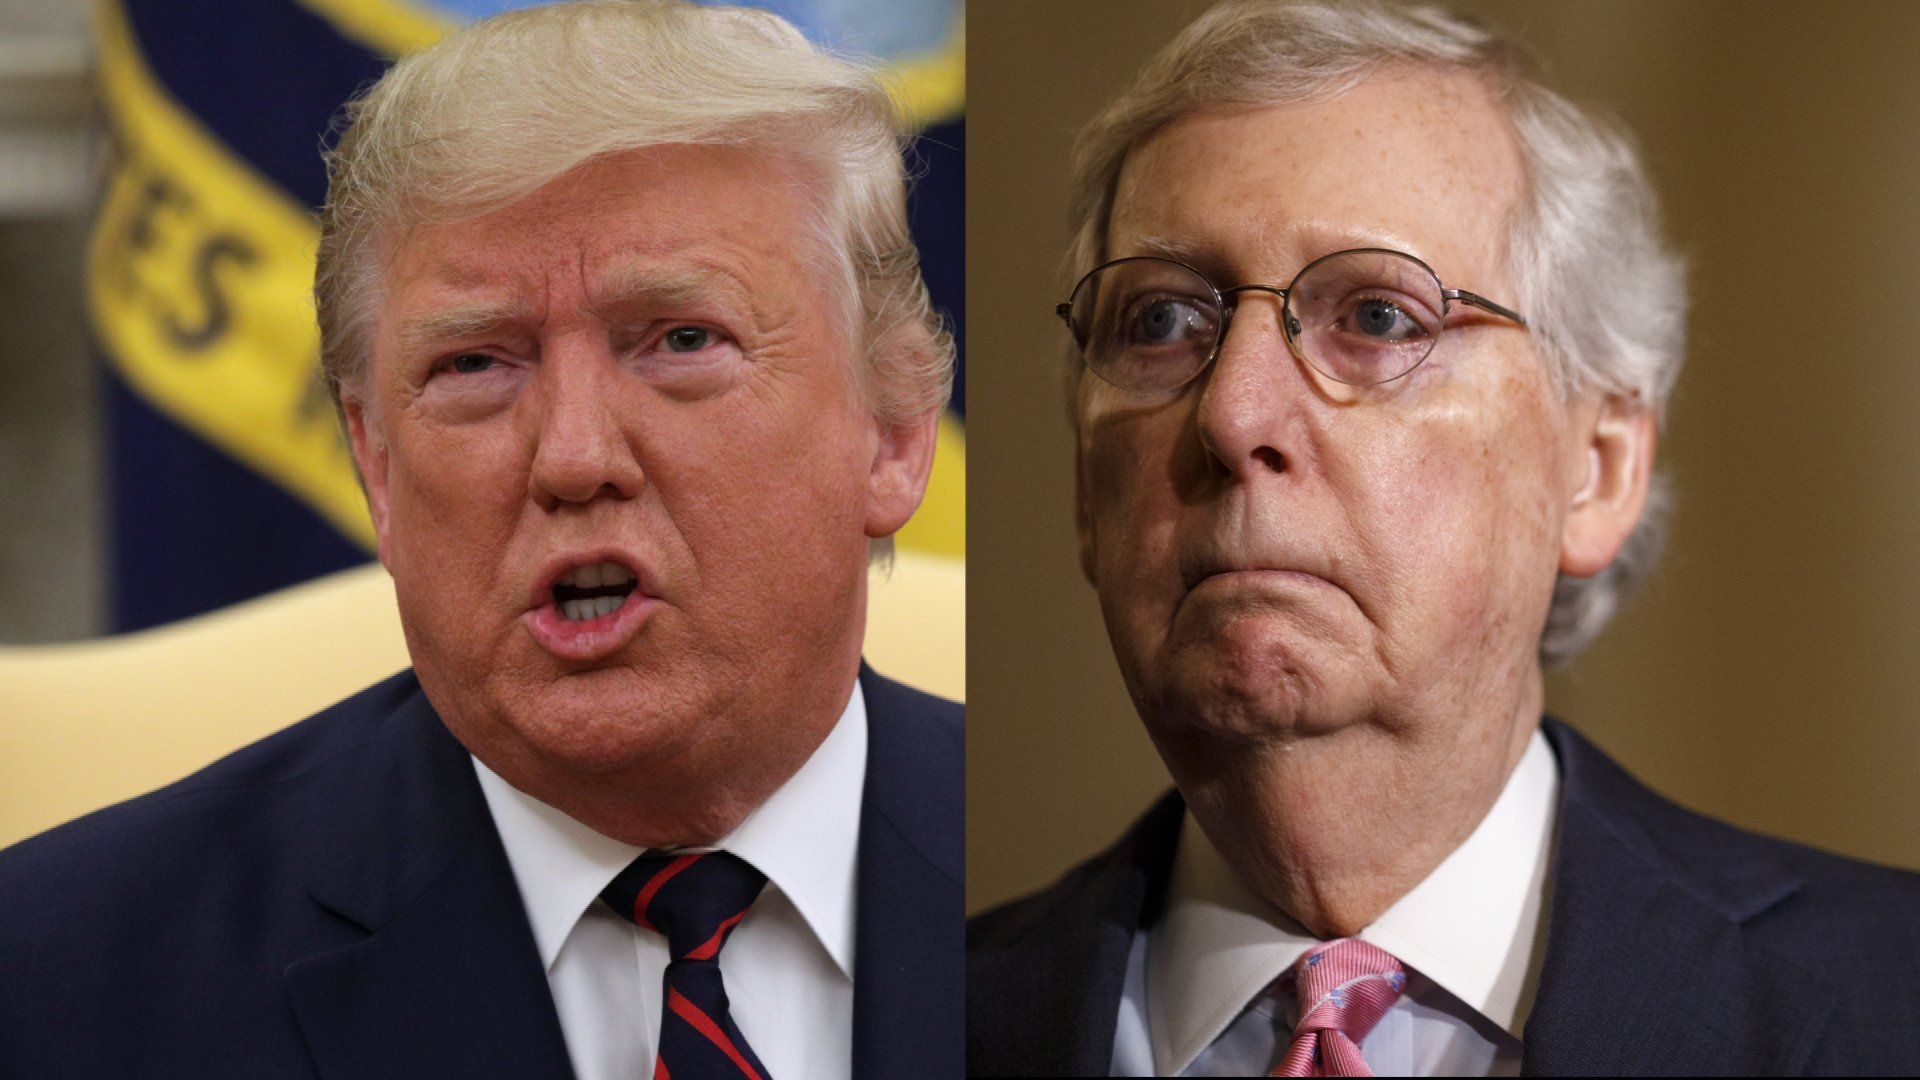 McConnell slams Trump administration for Syria withdrawal after talking to Pence